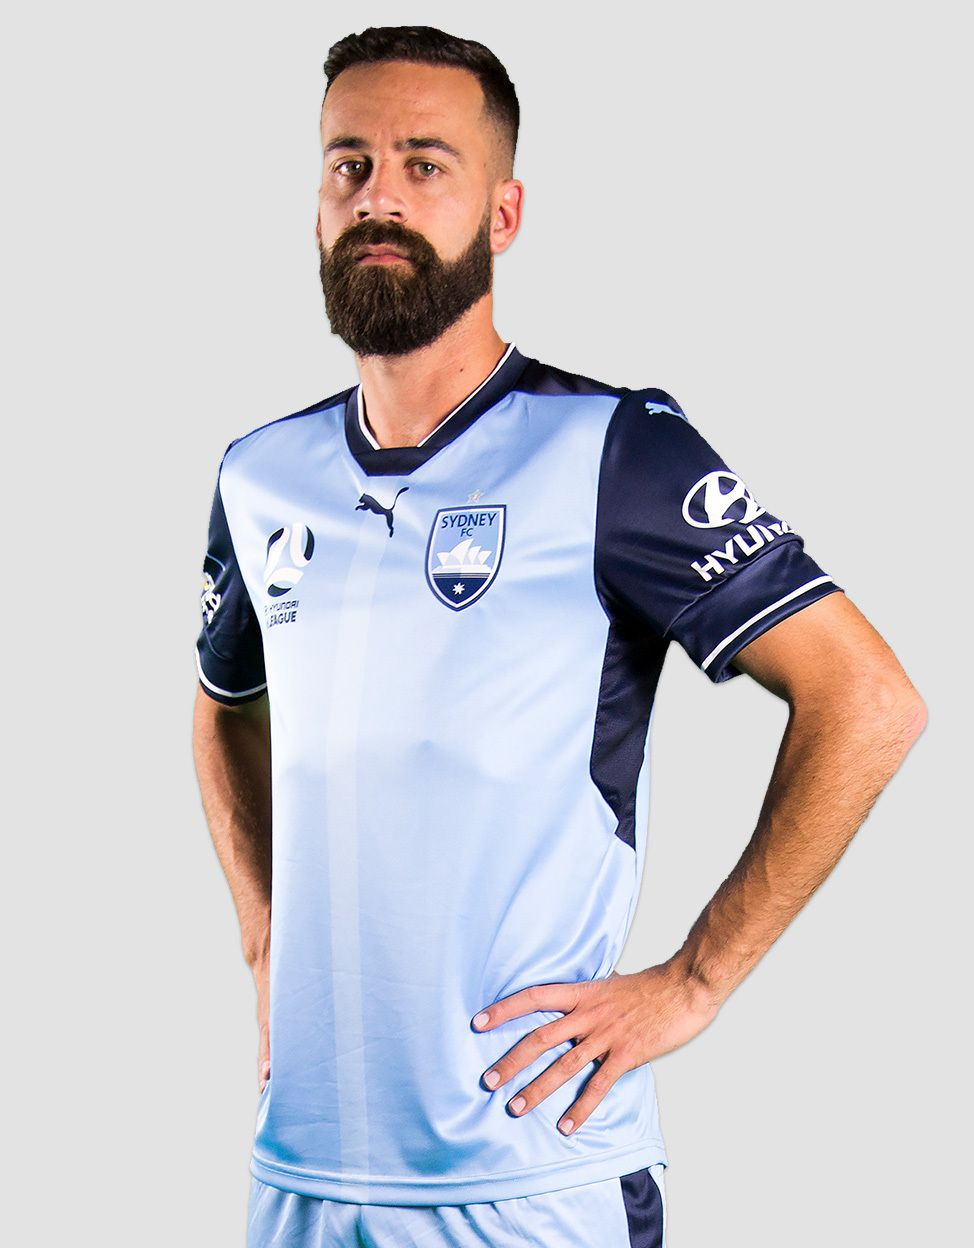 46dce6ff68b The new Sydney FC 2017-18 jerseys are based on an old Puma Arsenal template  and feature the club s new logo.